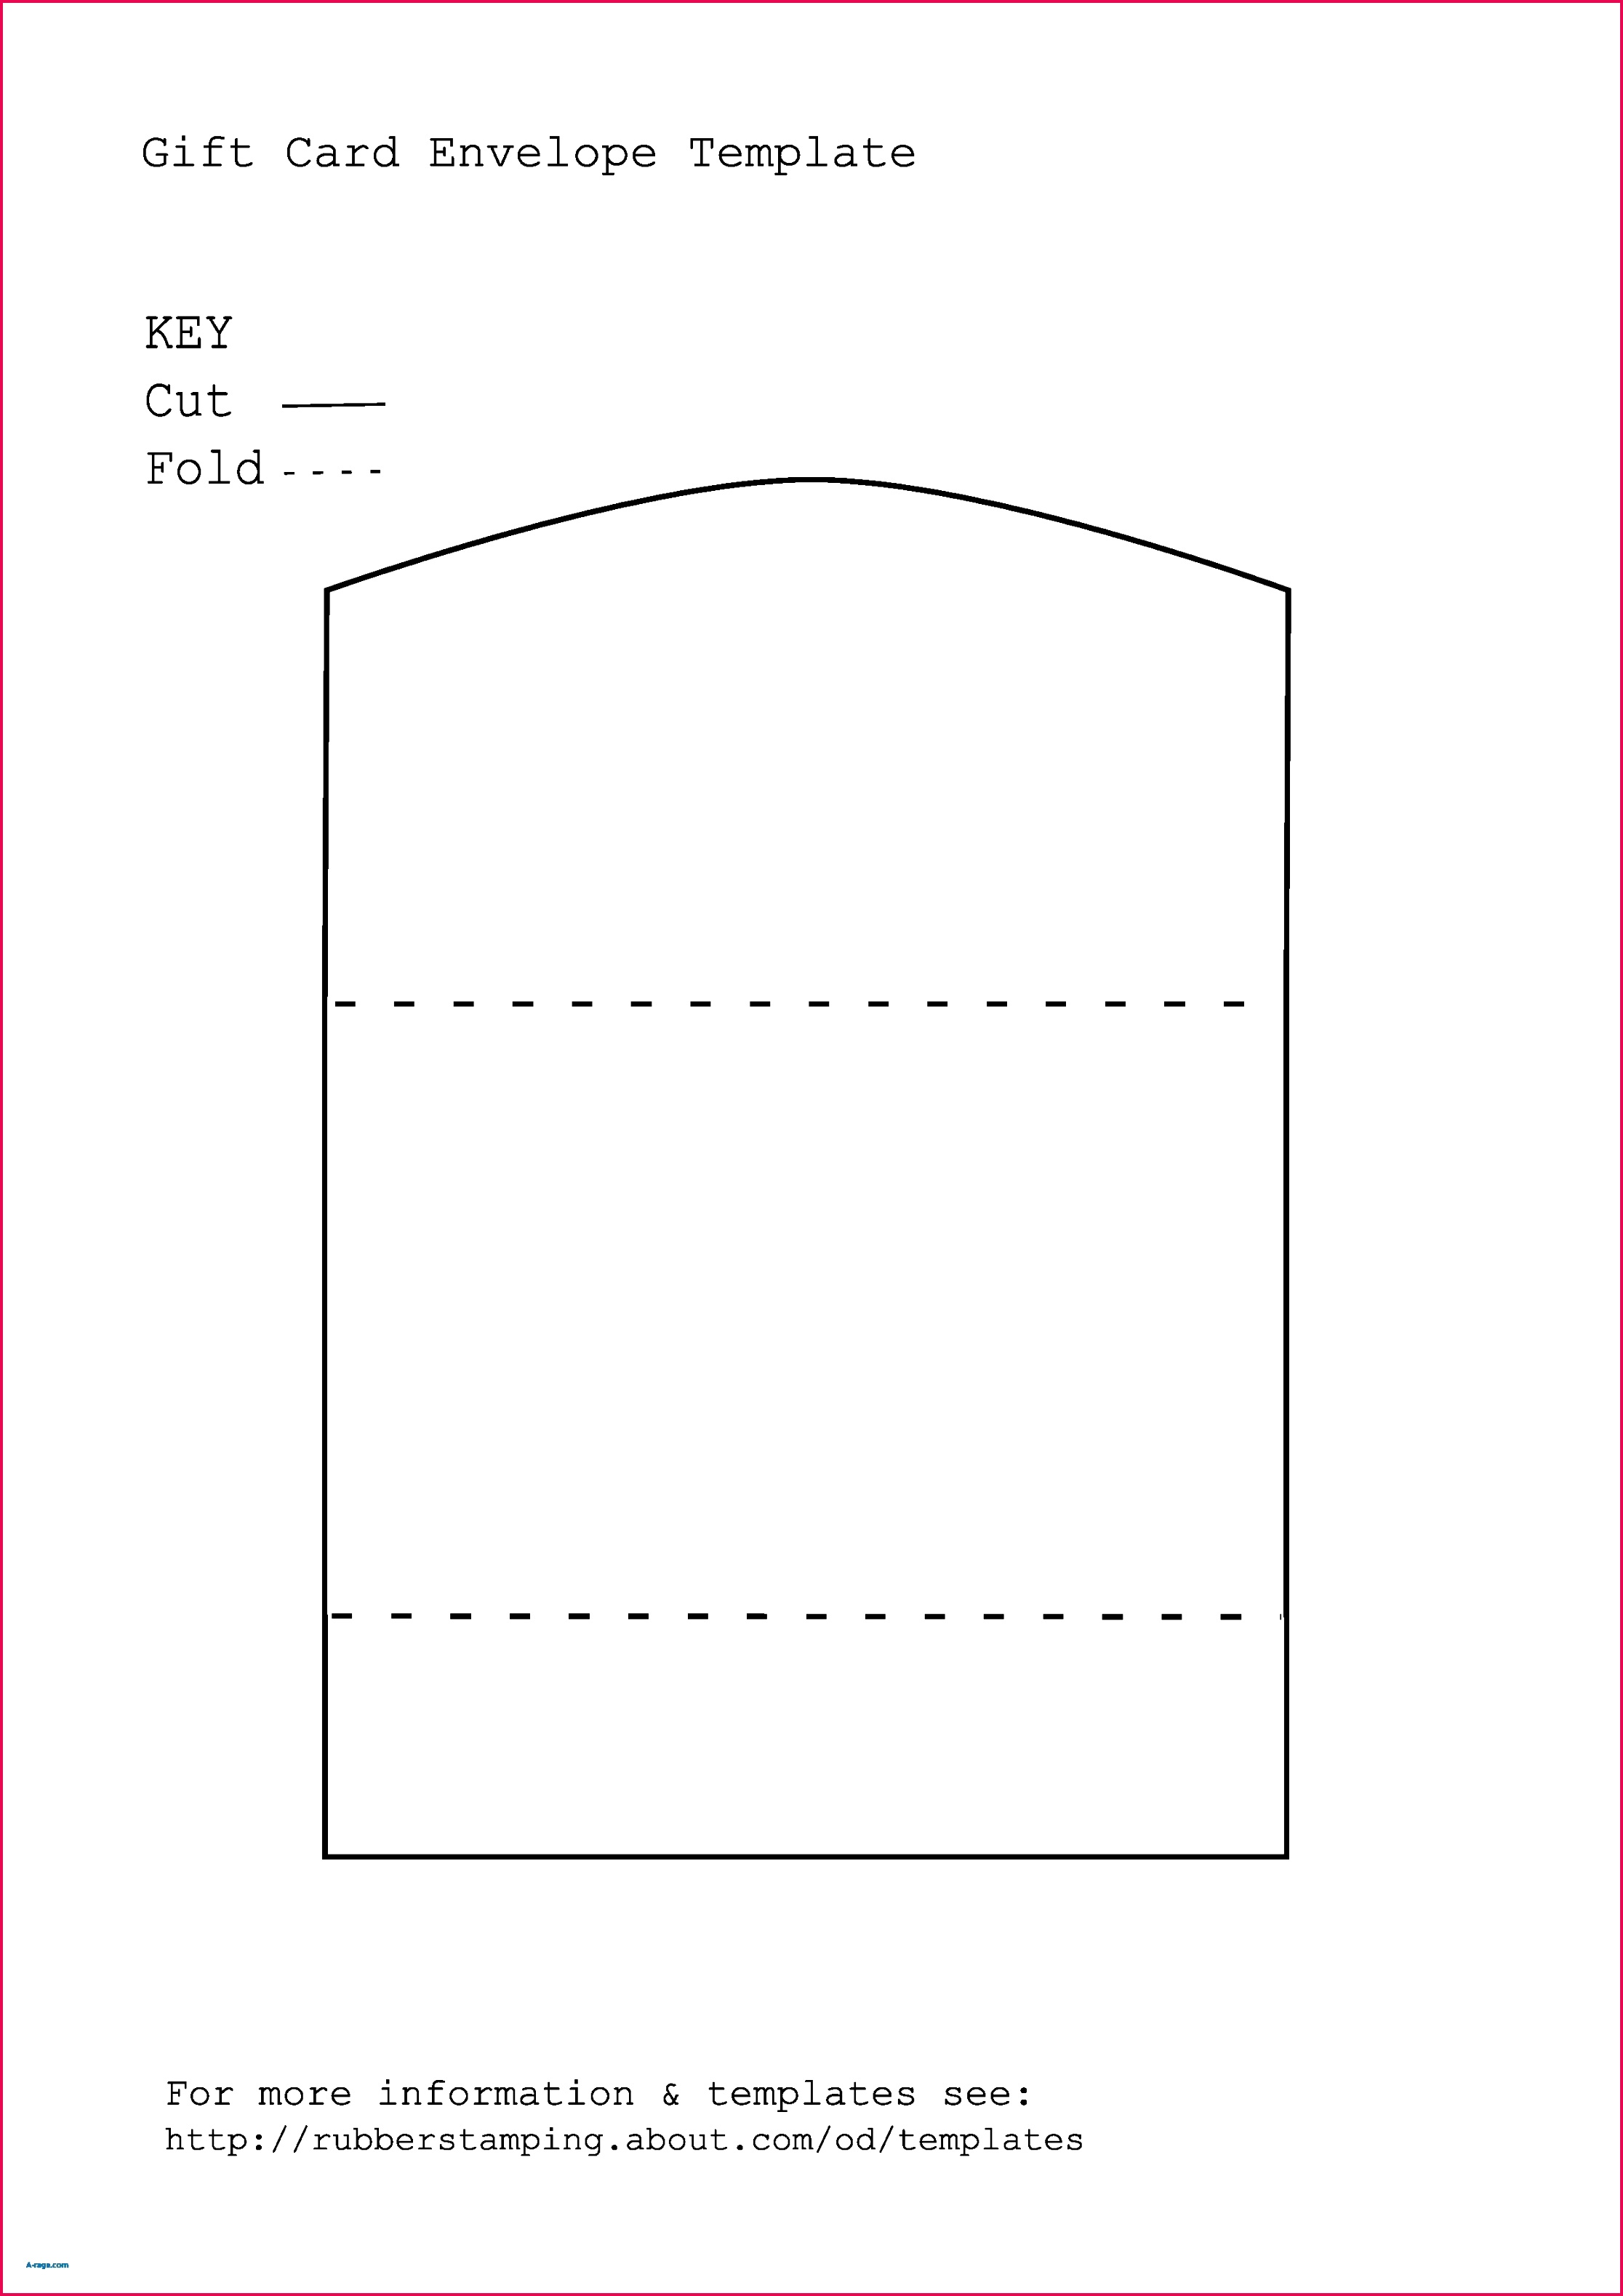 006 business card envelope template new reference fresh of t envelopes templates